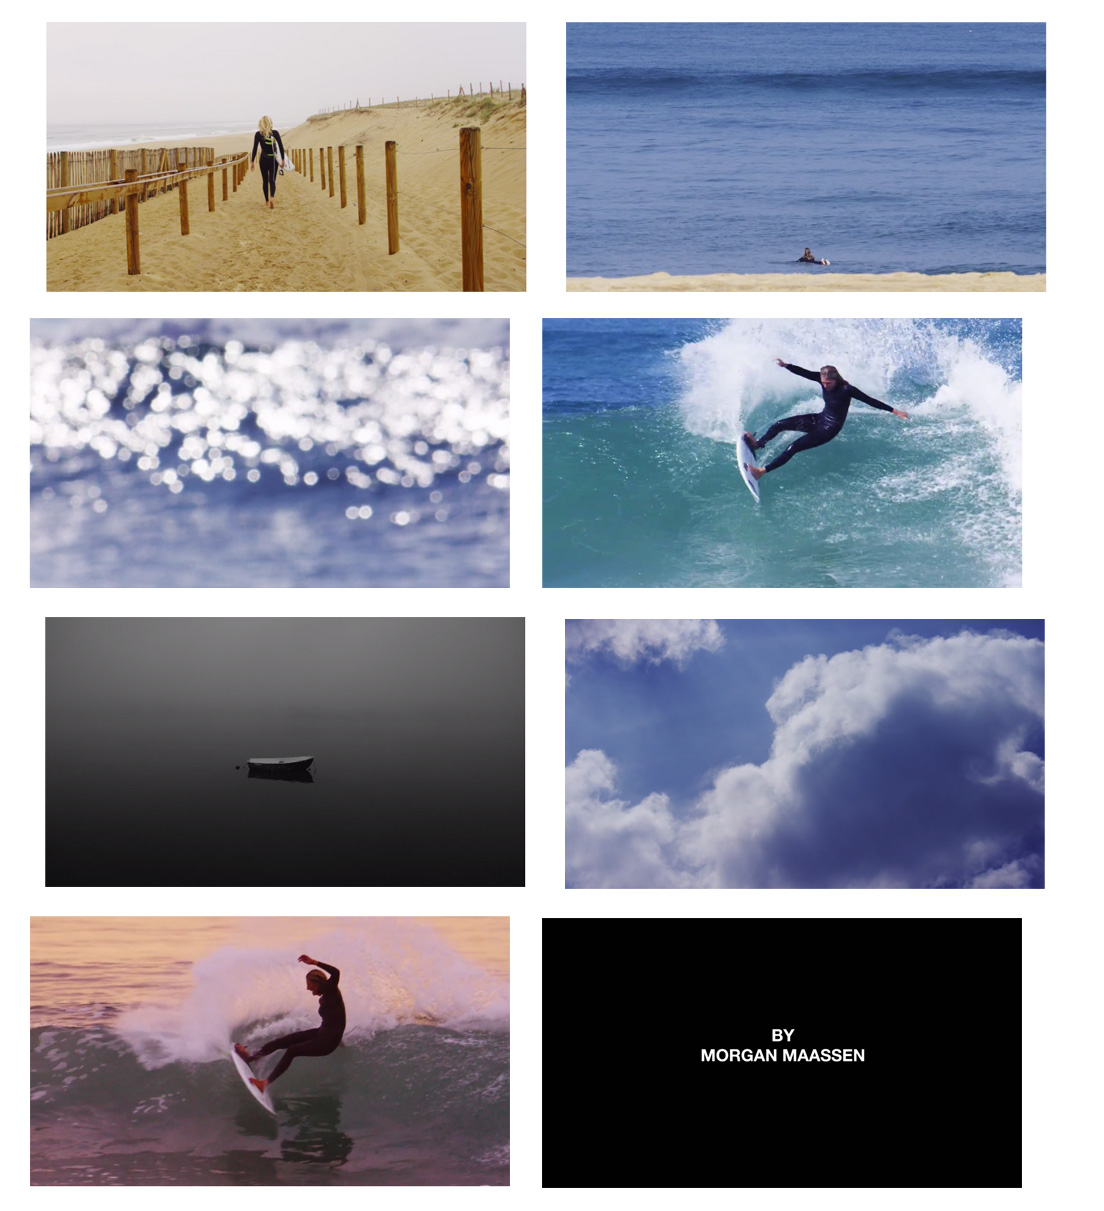 Frame grabs from Stephanie, a short film by Morgan Maassen starring Stephanie Gilmore